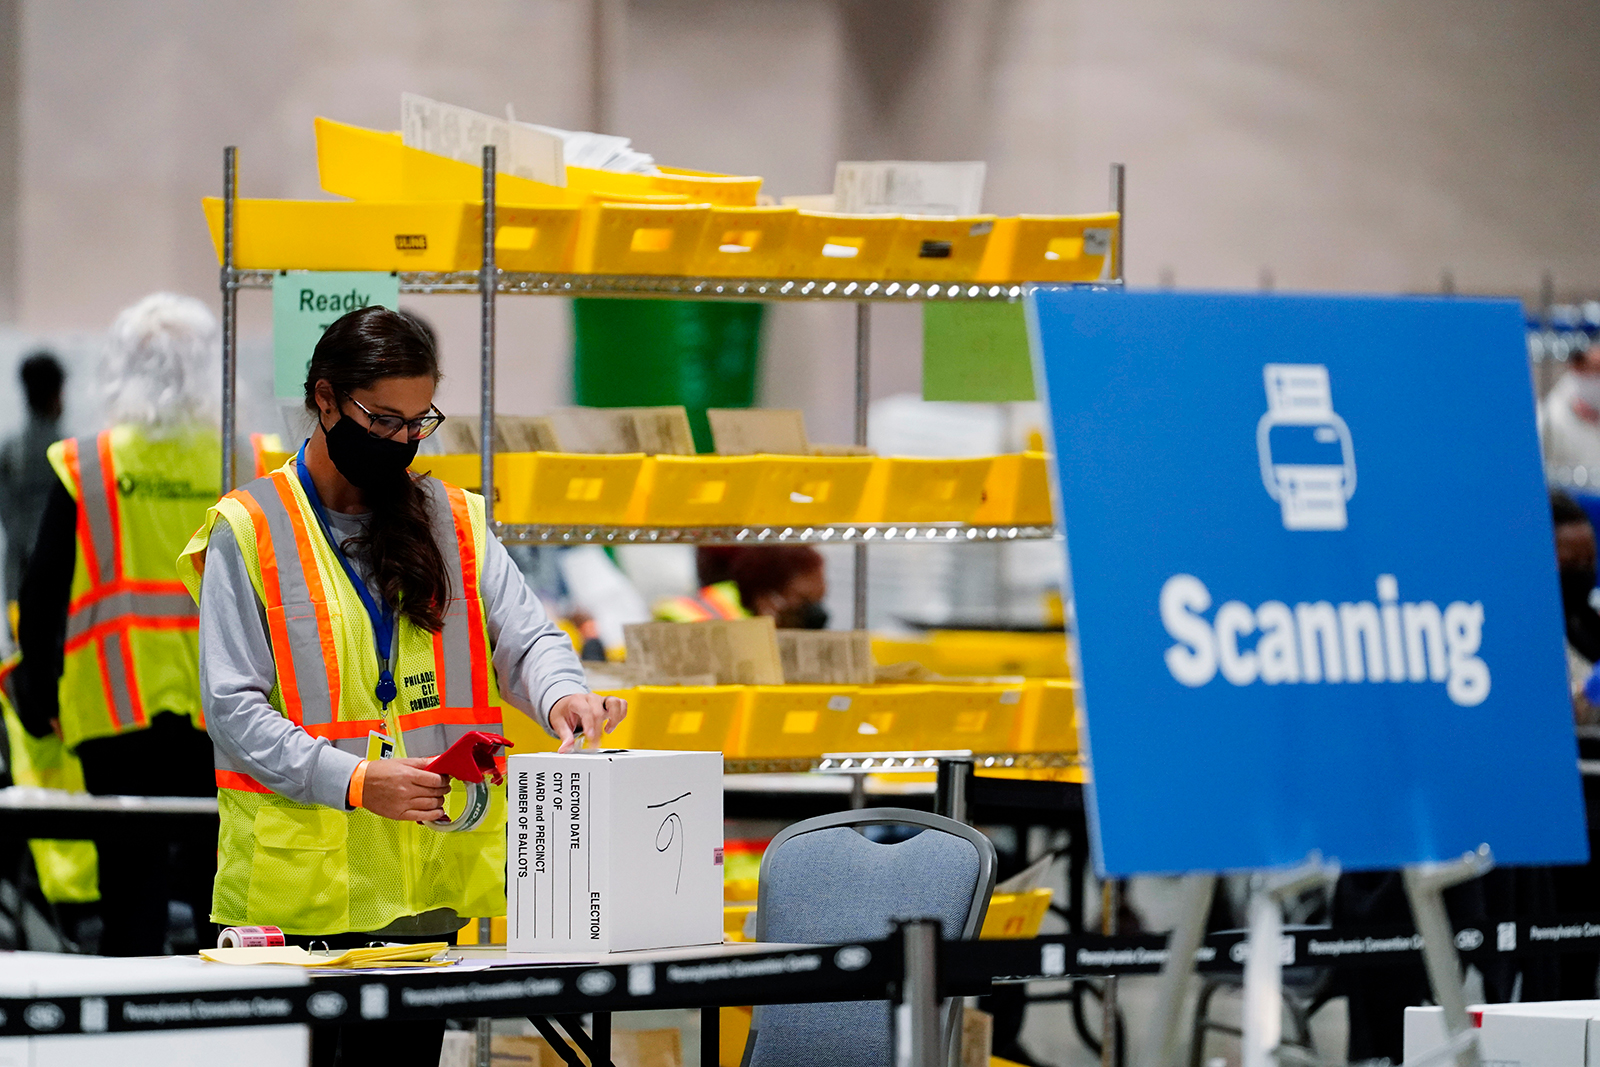 A Philadelphia election worker processes mail-in and absentee ballots for the 2020 general election in the United States at the Pennsylvania Convention Center, Tuesday, Nov. 3, in Philadelphia.